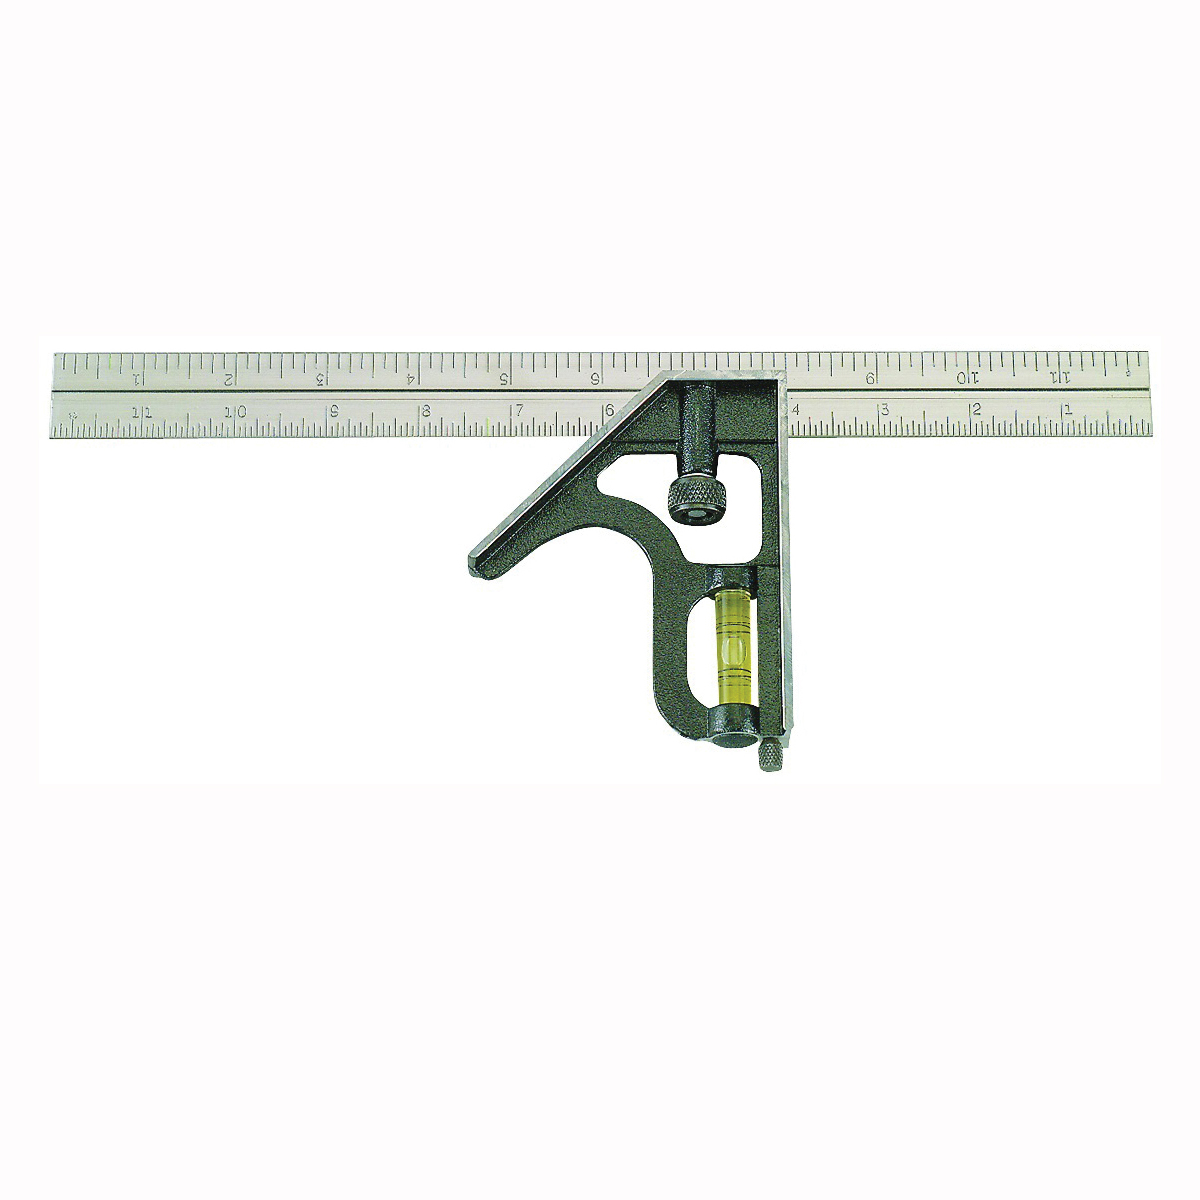 Picture of Johnson 400 Combination Square, 12 in L Blade, SAE Graduation, Stainless Steel Blade